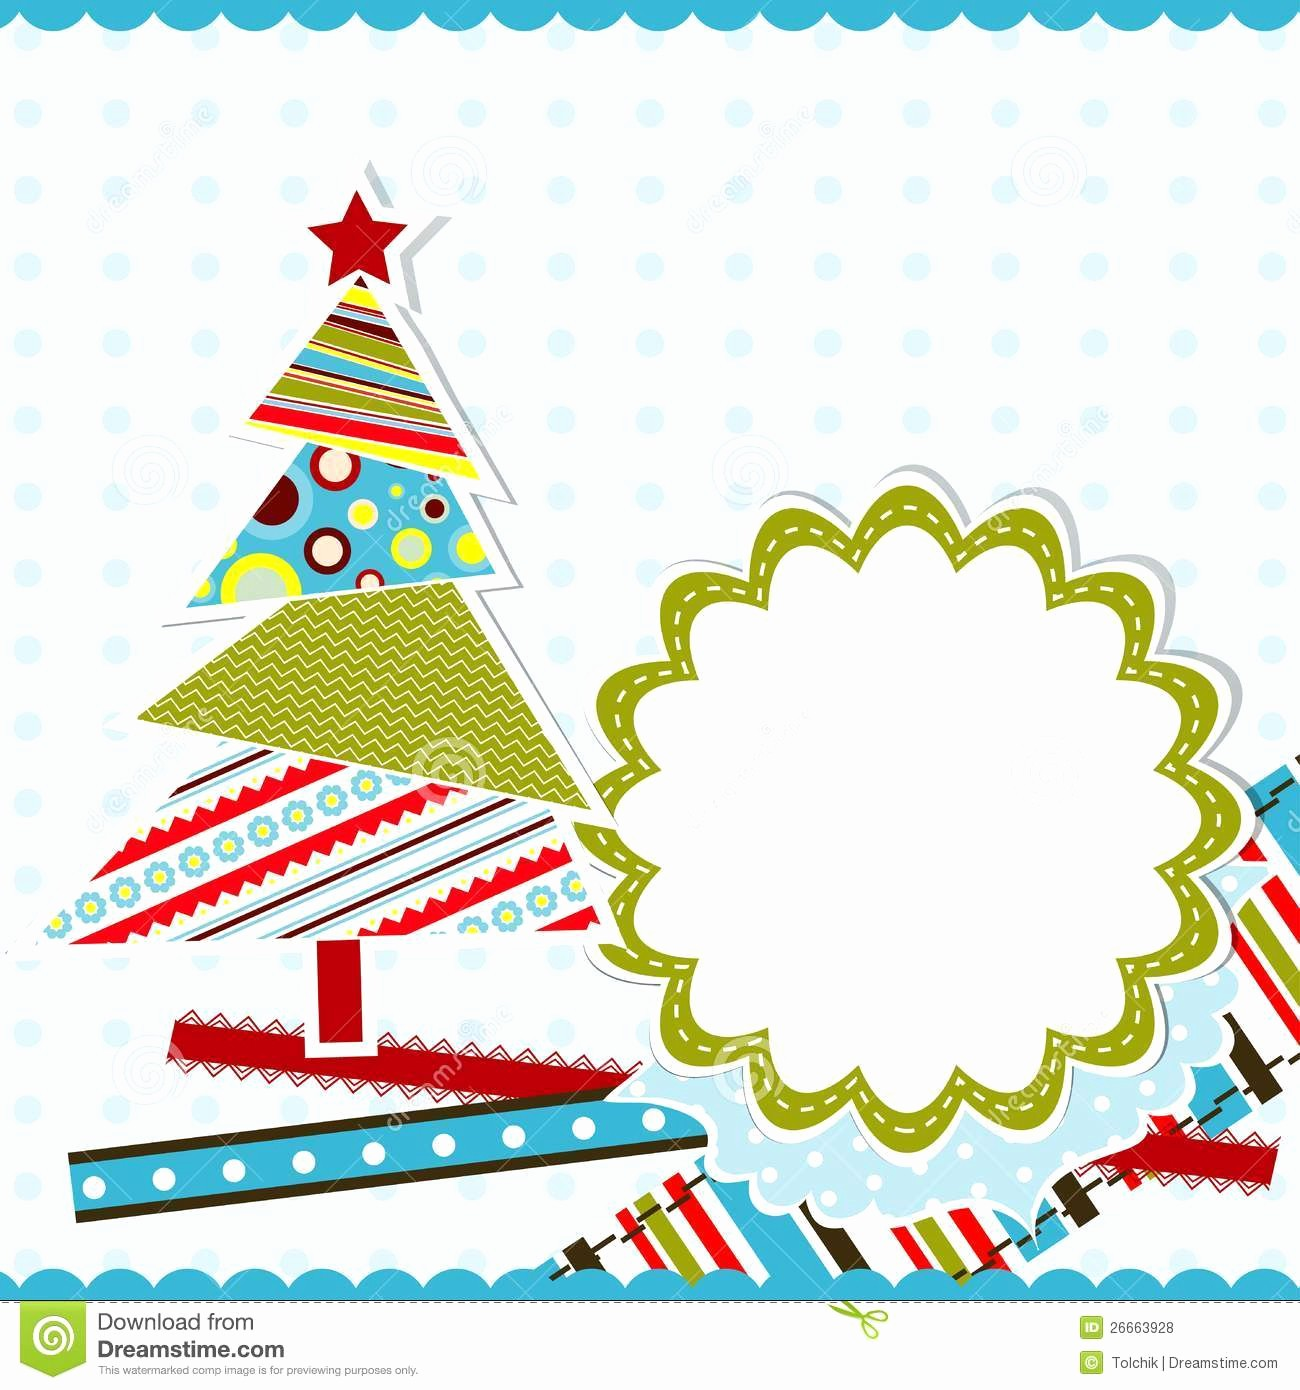 Greeting Cards Templates Free Downloads Awesome Christmas Greeting Cards Templates for Free Downloads